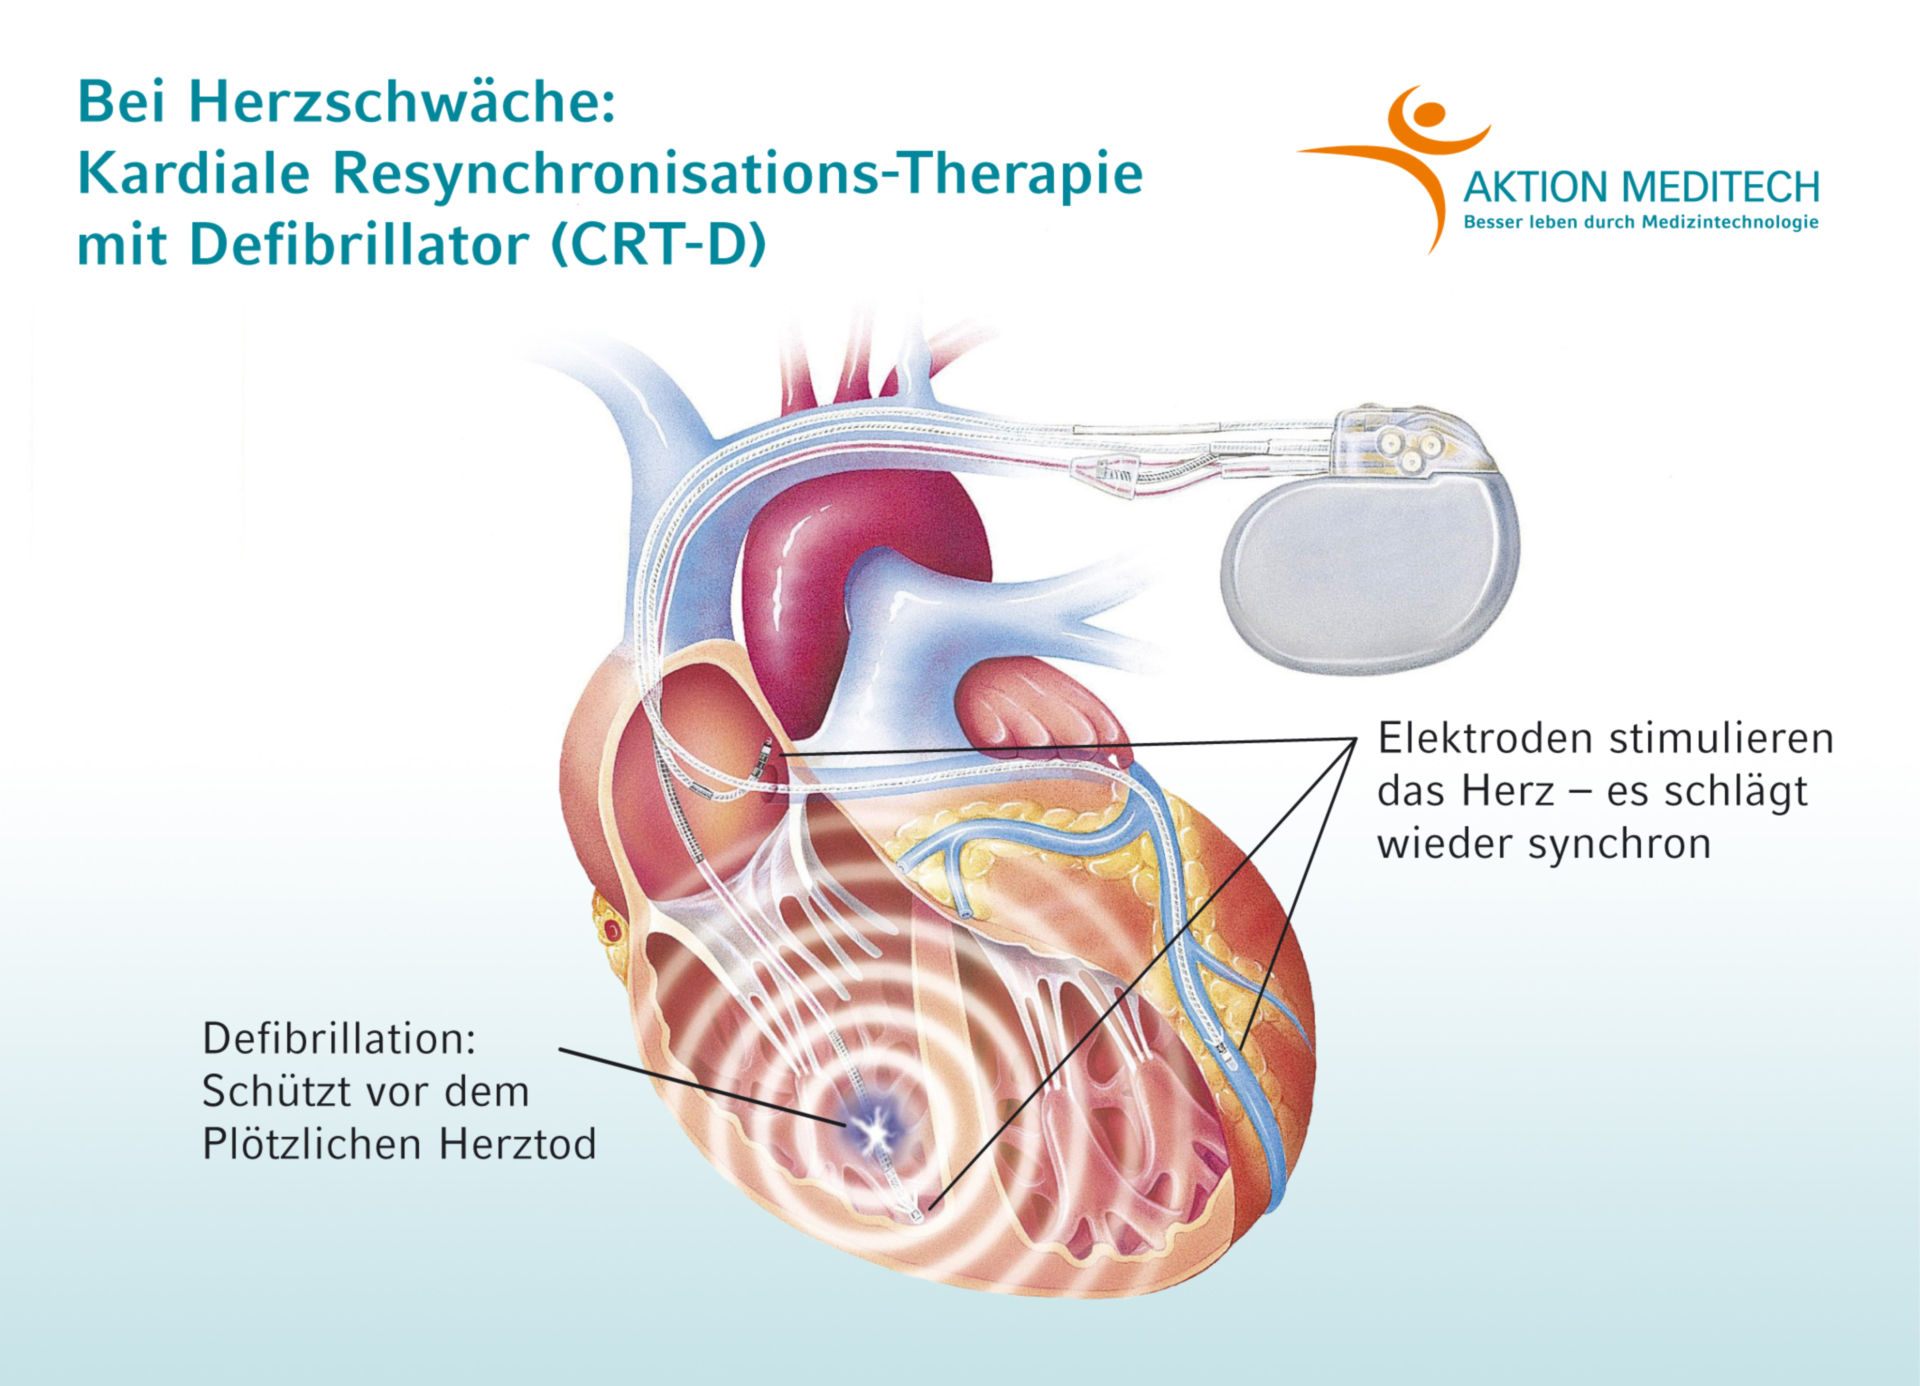 Cardiac resynchronization-therapy with integrated defibrillator (CRT-D)